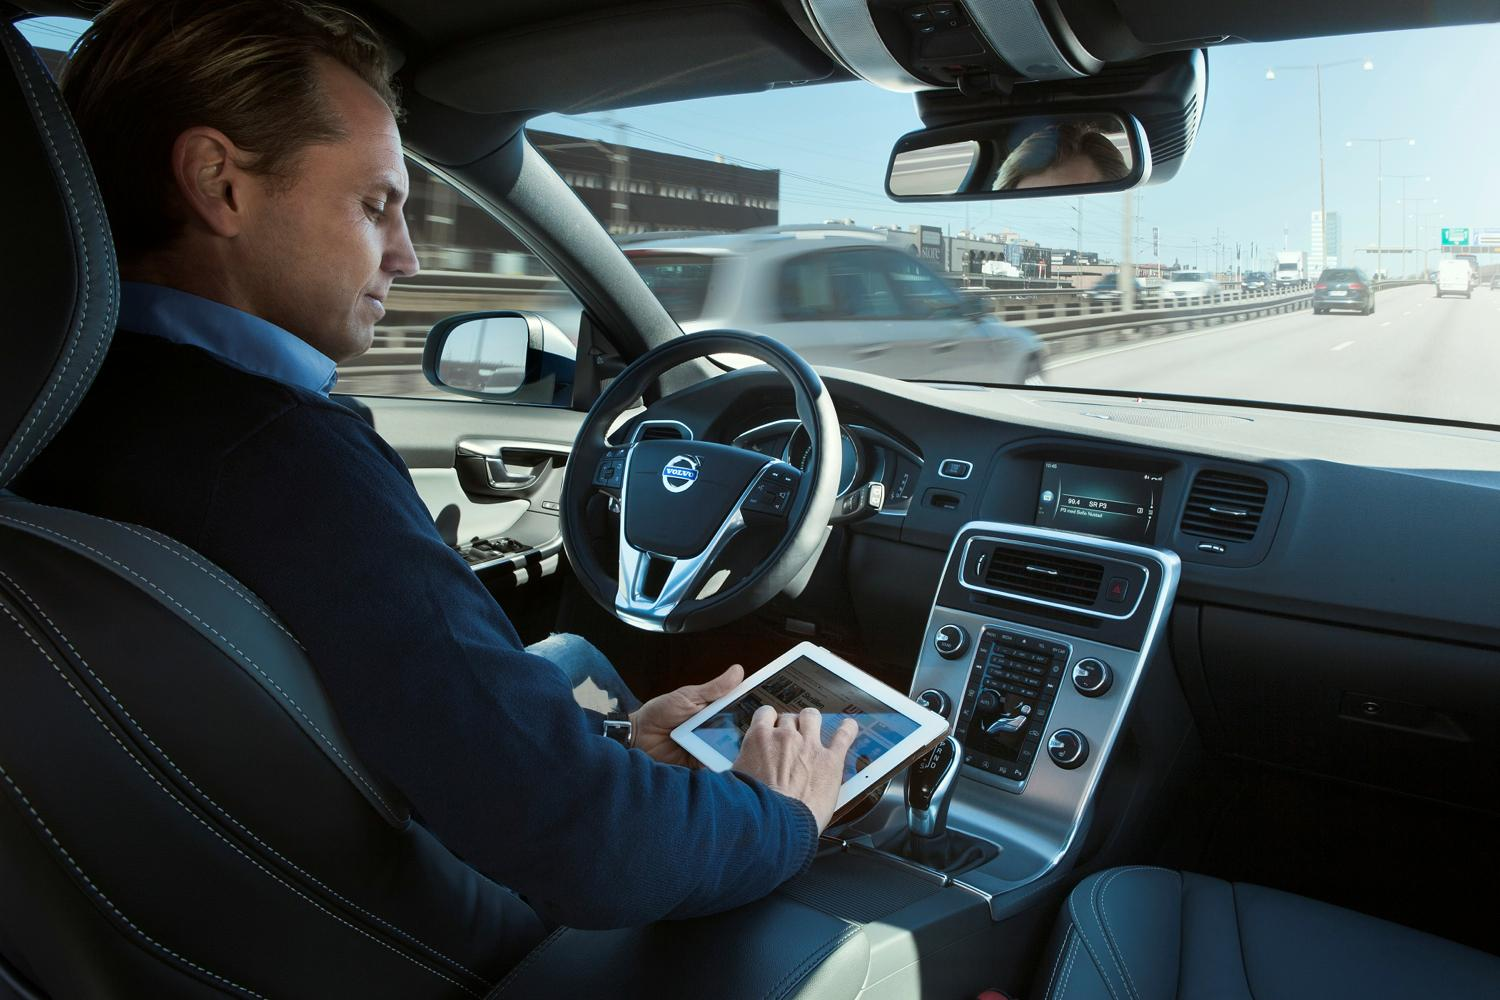 Self-driving cars can change the modern automobile for better.